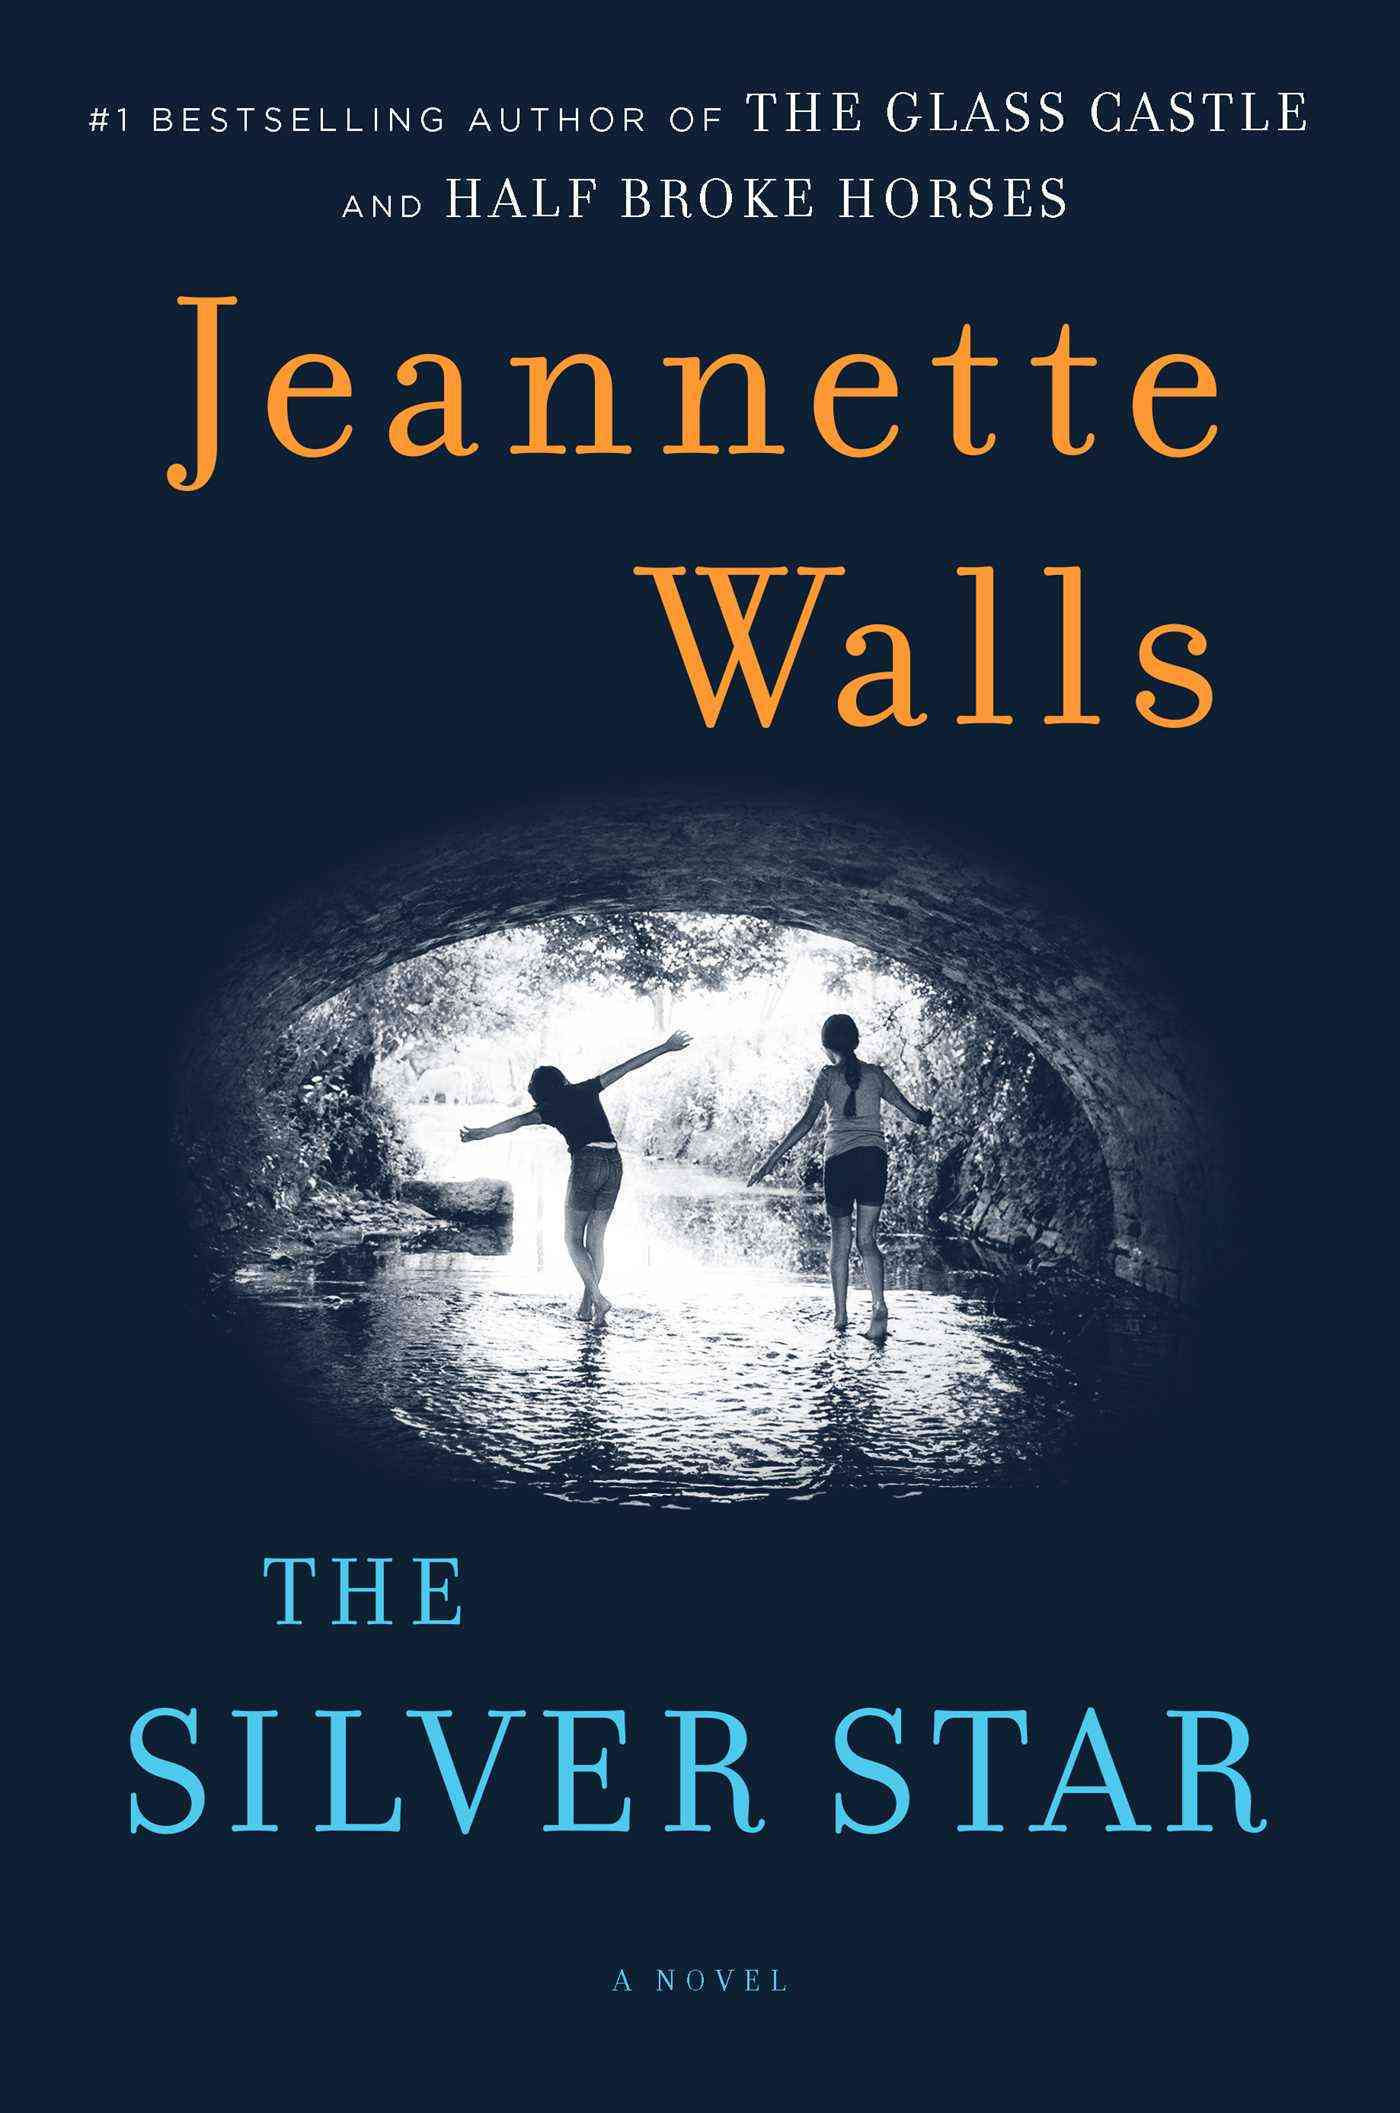 The Silver Star (Hardcover)